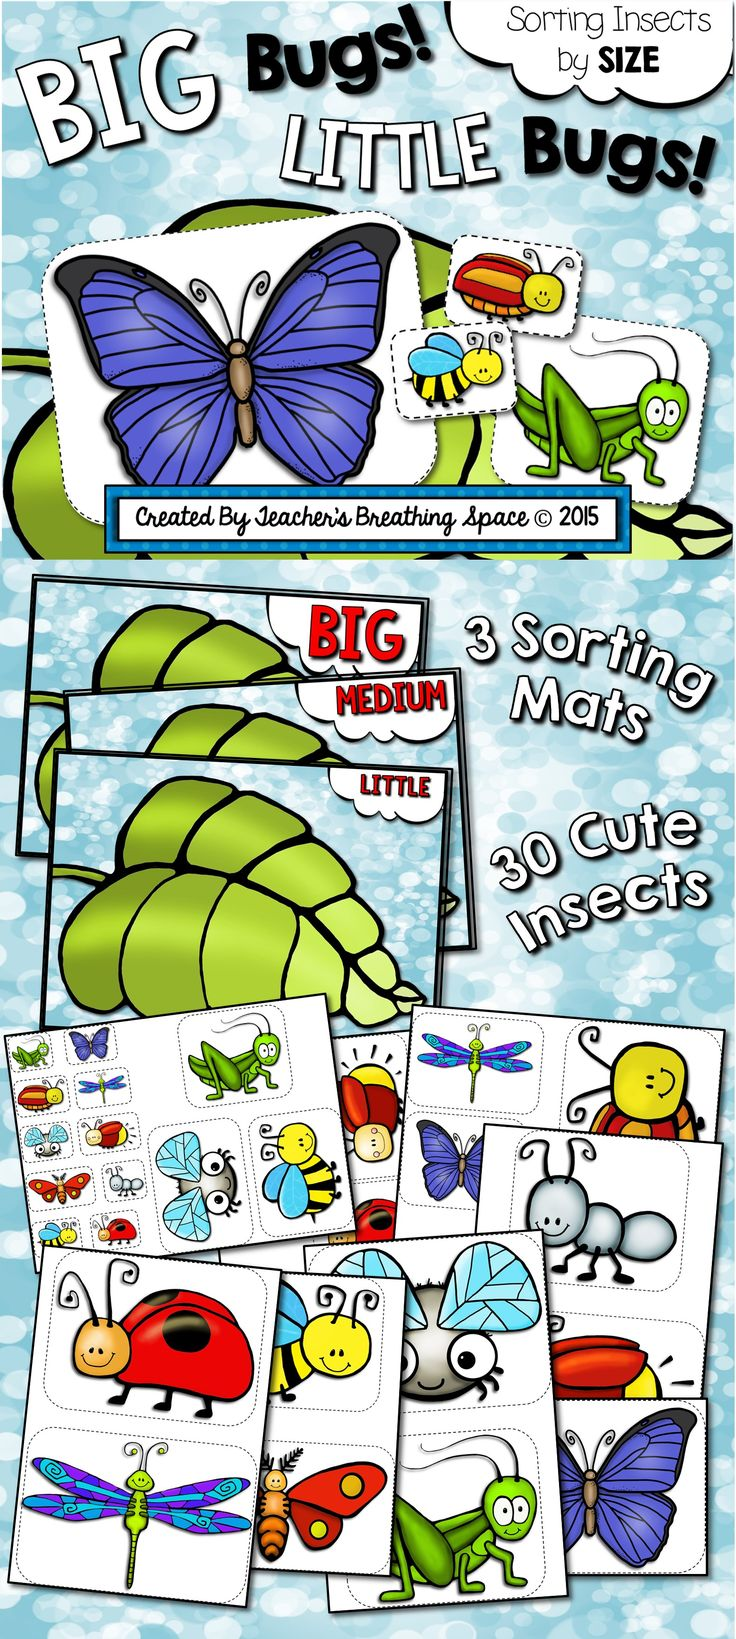 Big Bugs! Little Bugs! --- Sorting Insects By Size --- Spring Math Center! This set contains 3 sorting mats and 30 adorable insects to sort! Just $1.00!